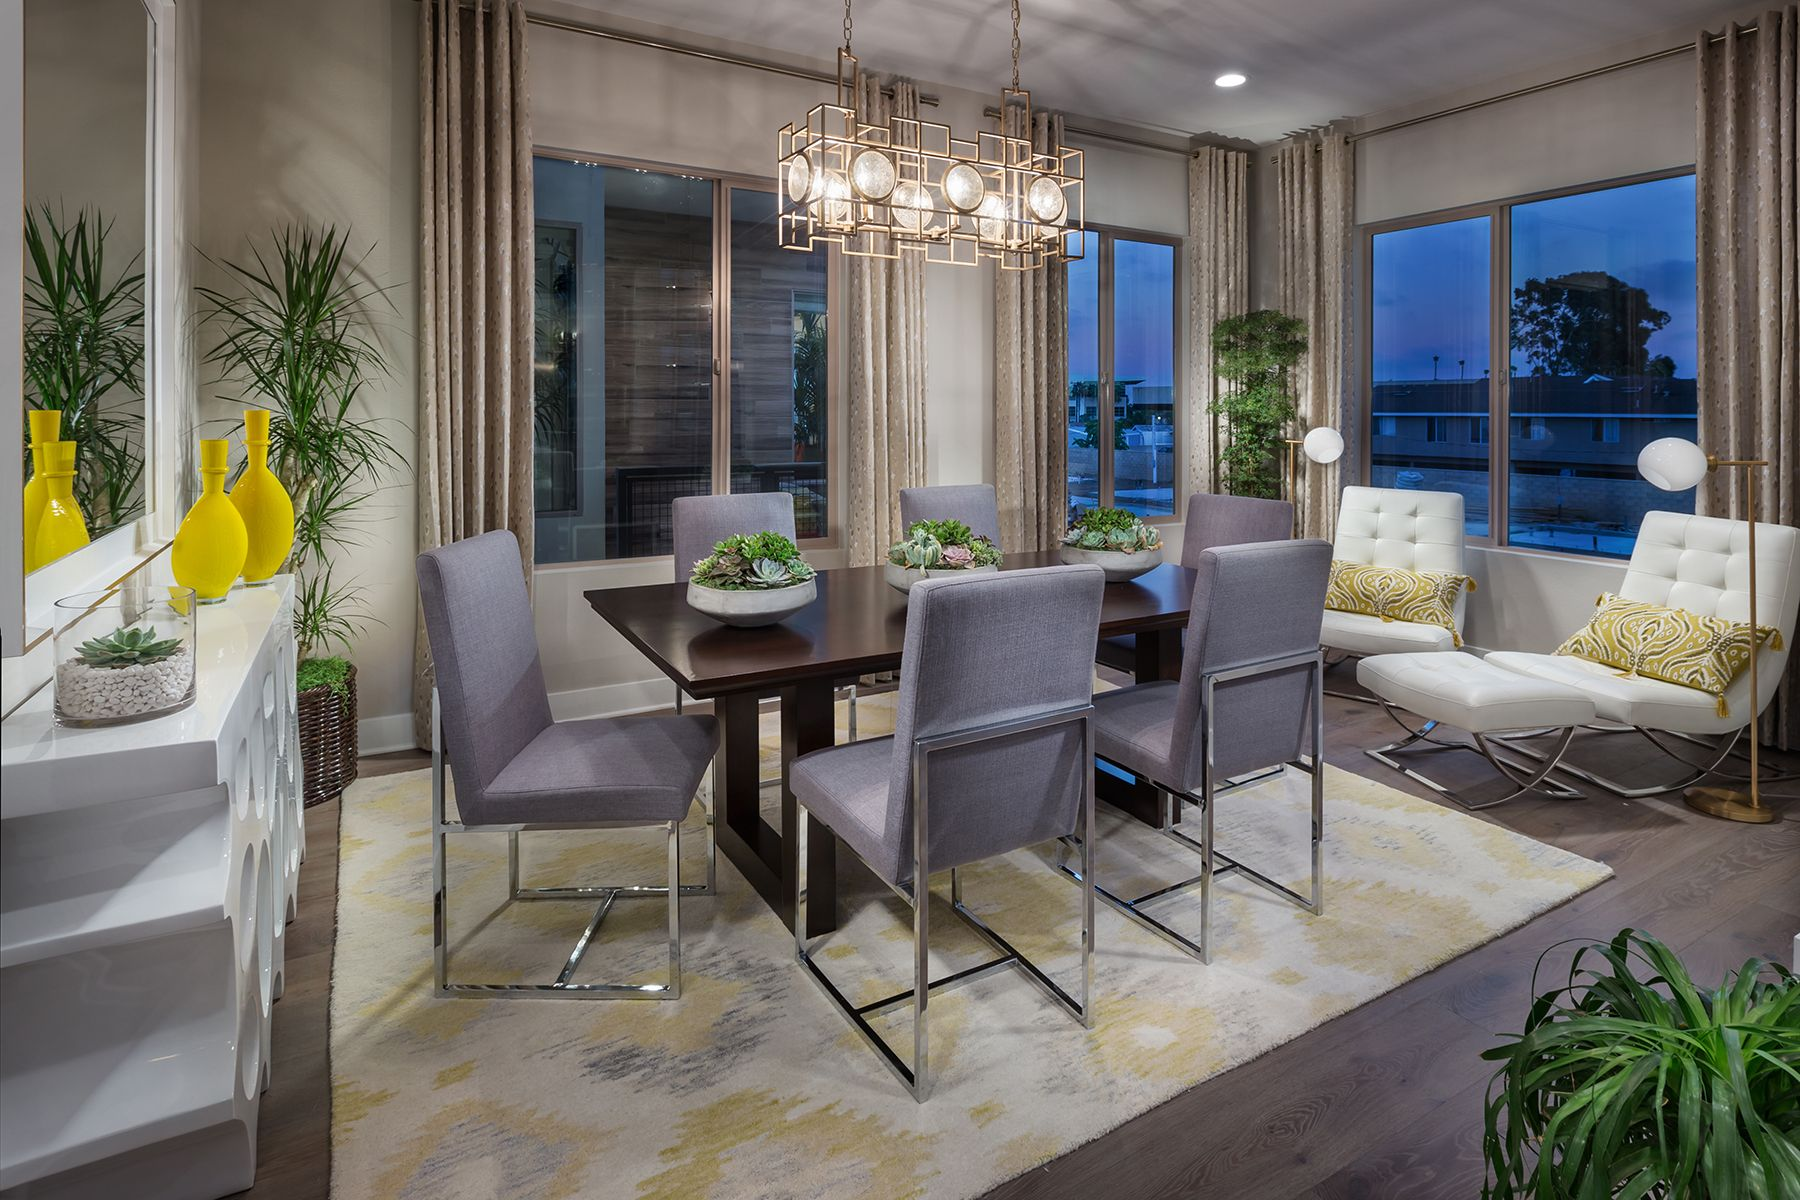 Living Area featured in the Residence 3 Balboa By MBK Homes in Orange County, CA